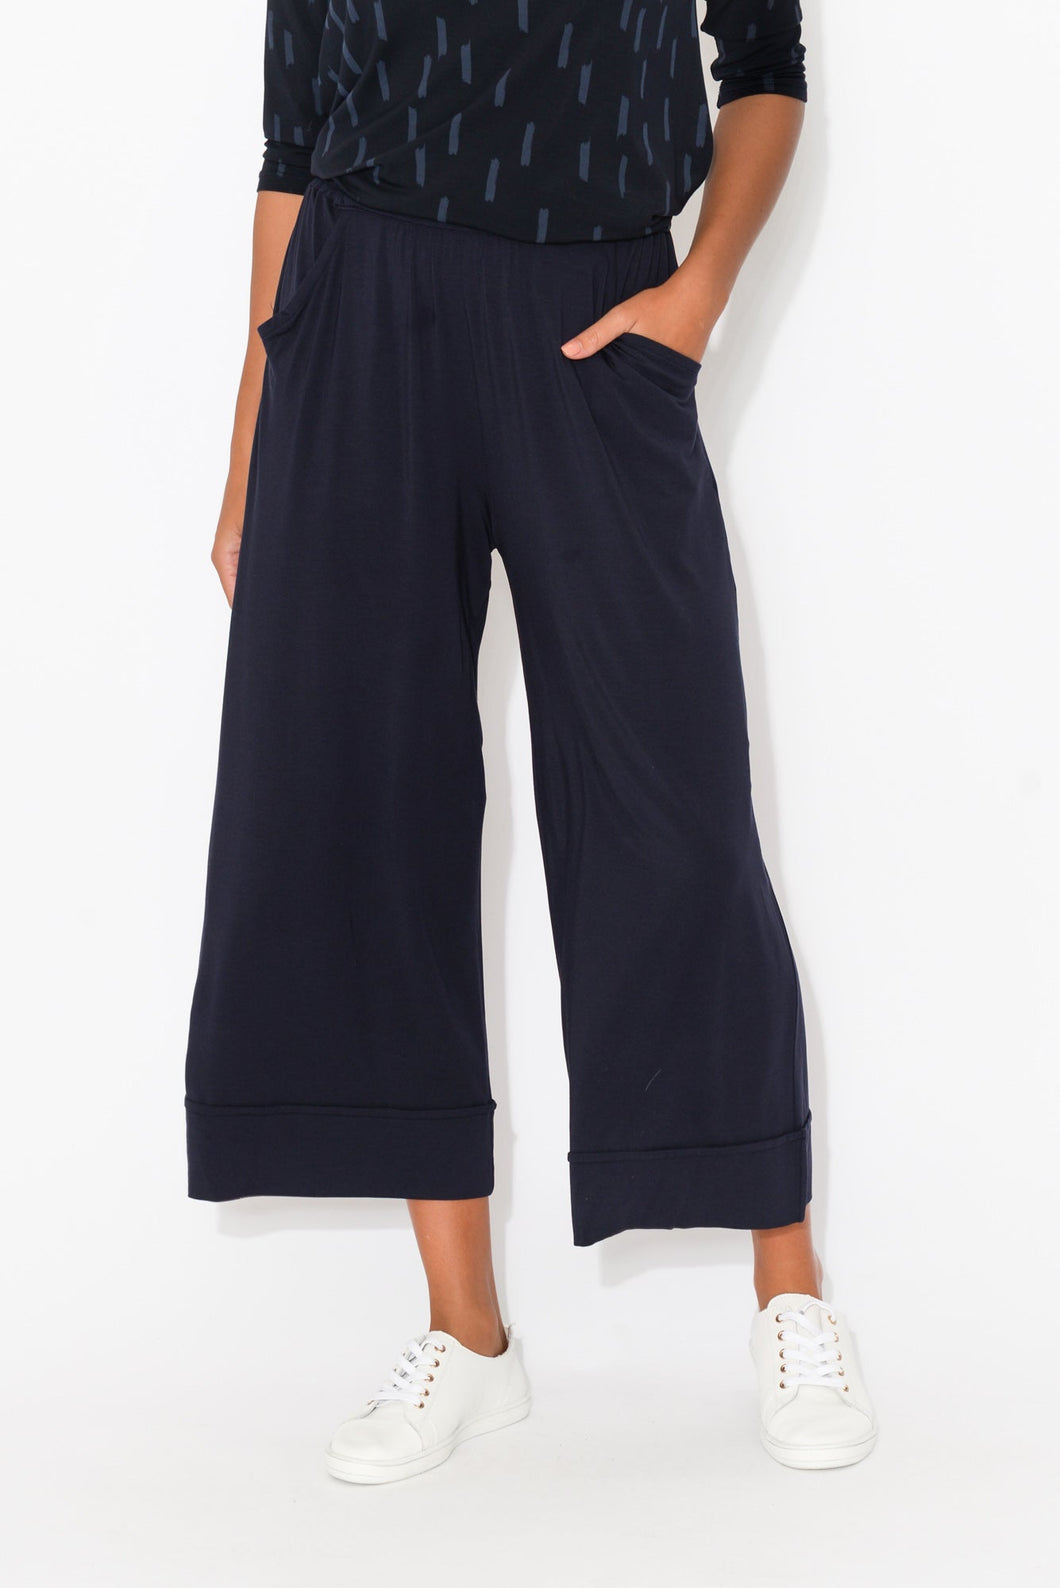 Lena Navy Modal Resort Pant